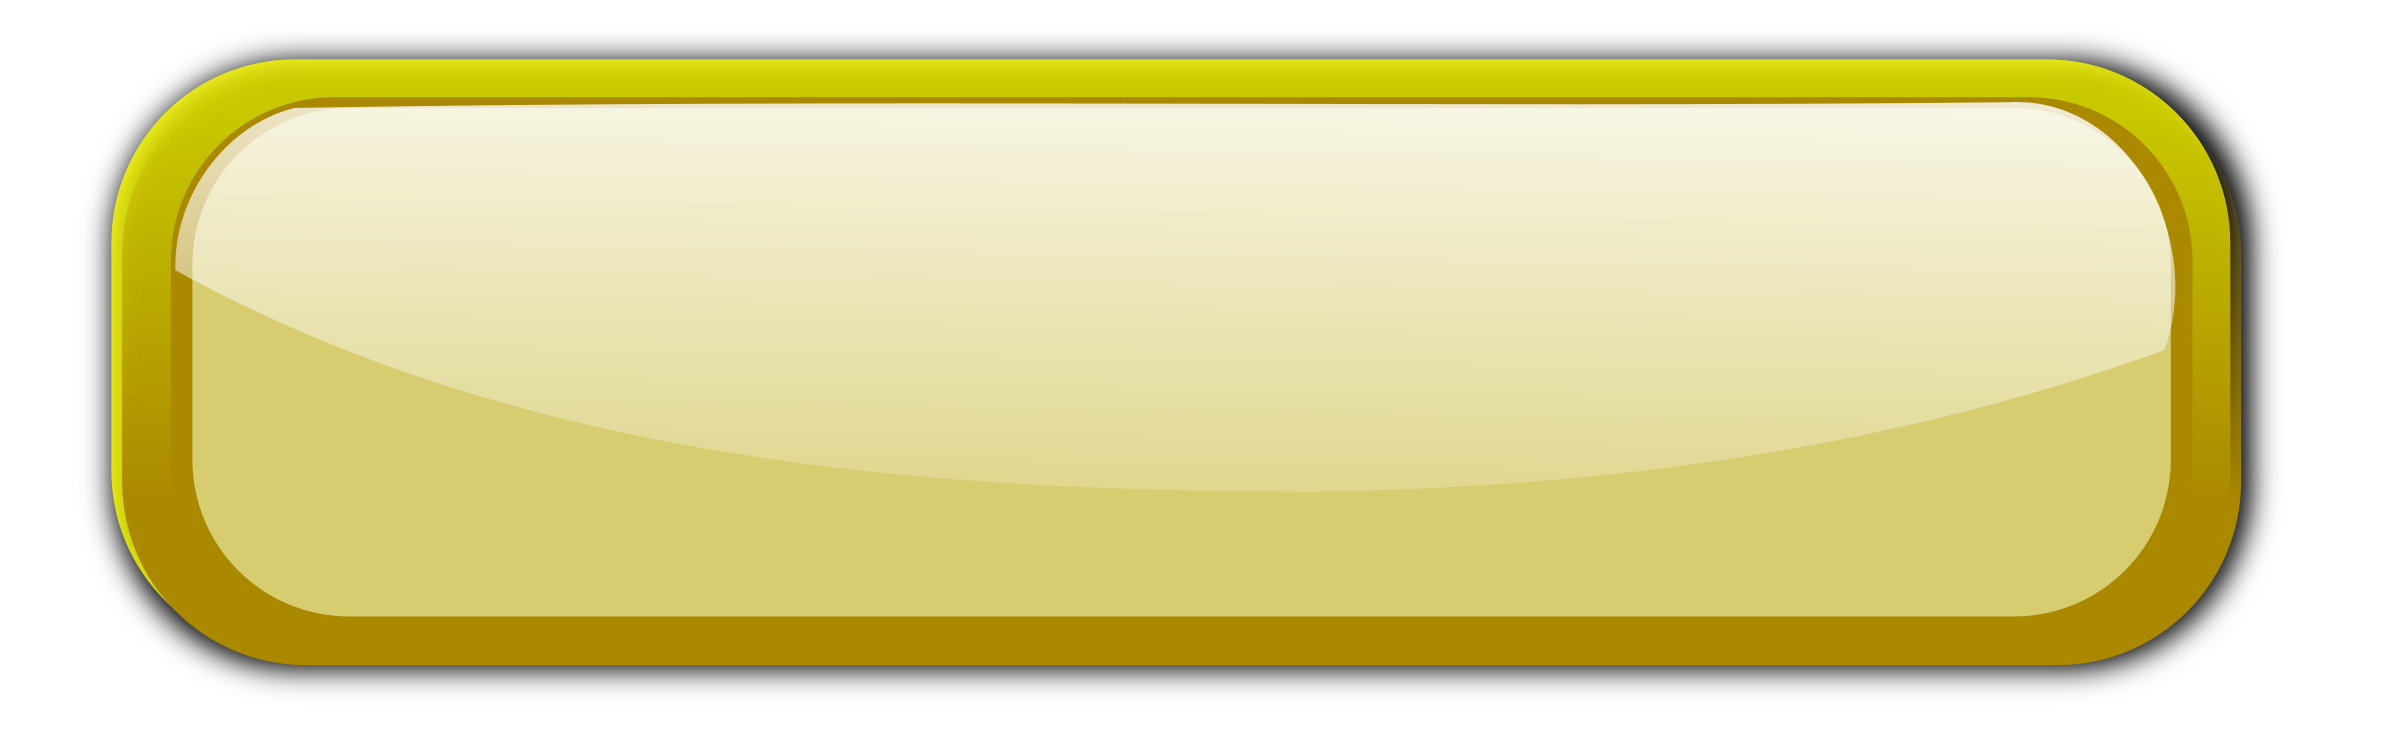 Png gold banner. Clipart button big image